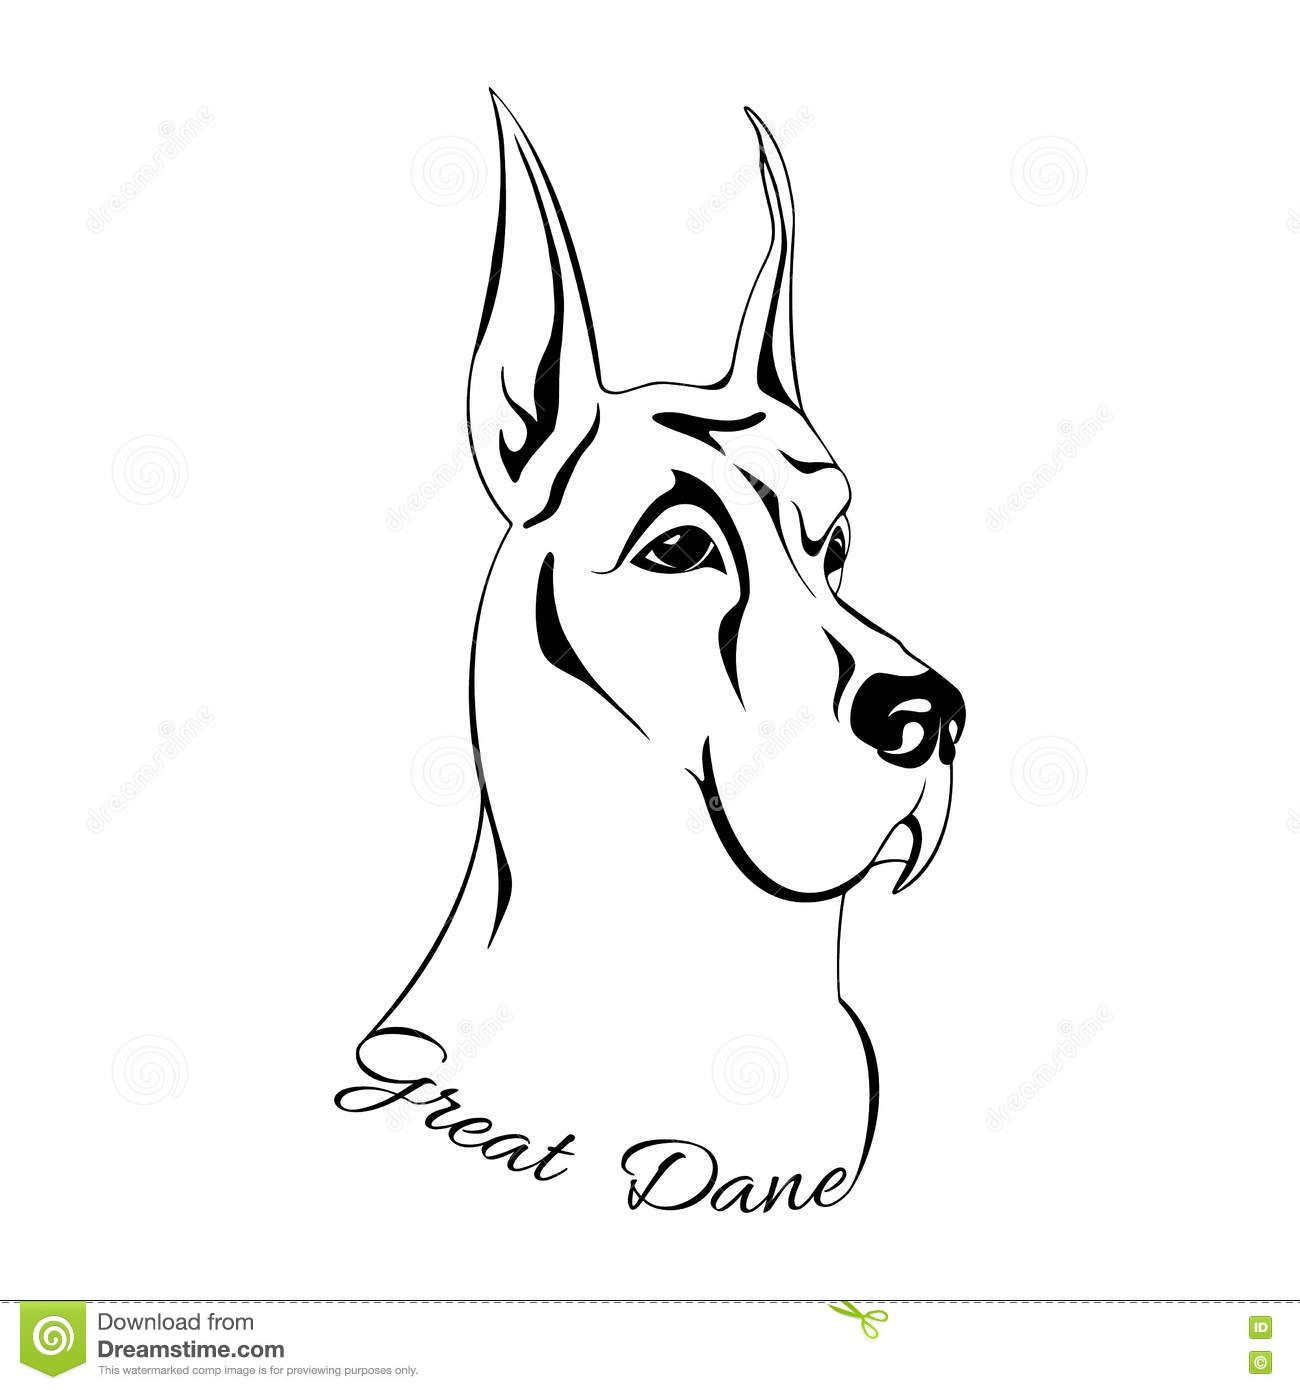 Dog Head Great Dane Download From Over 64 Million High Quality